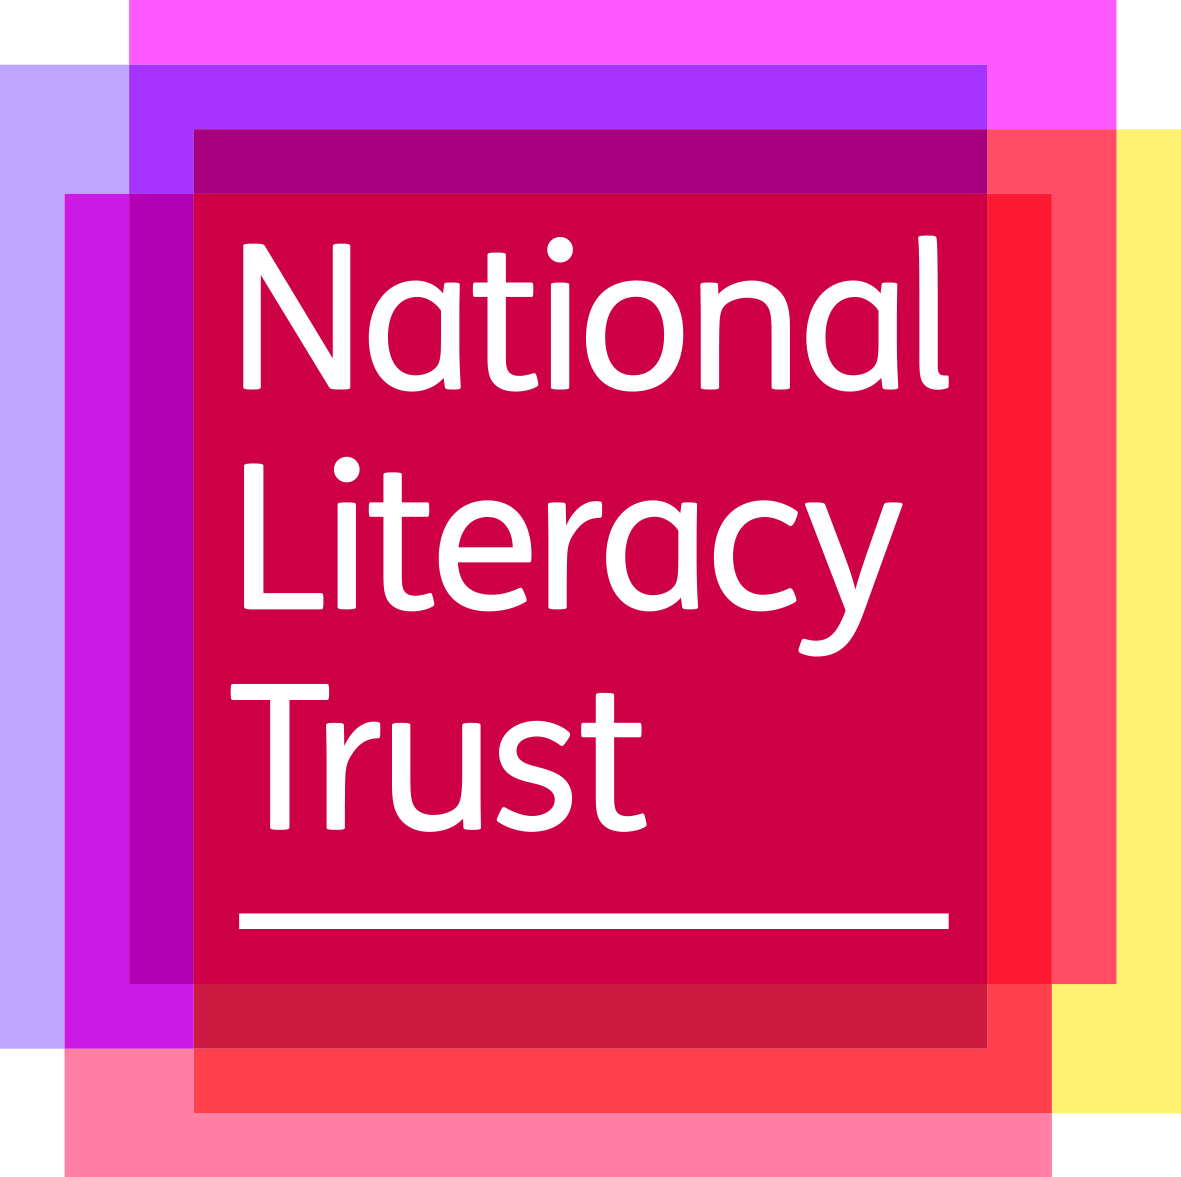 National-literacy-Trust